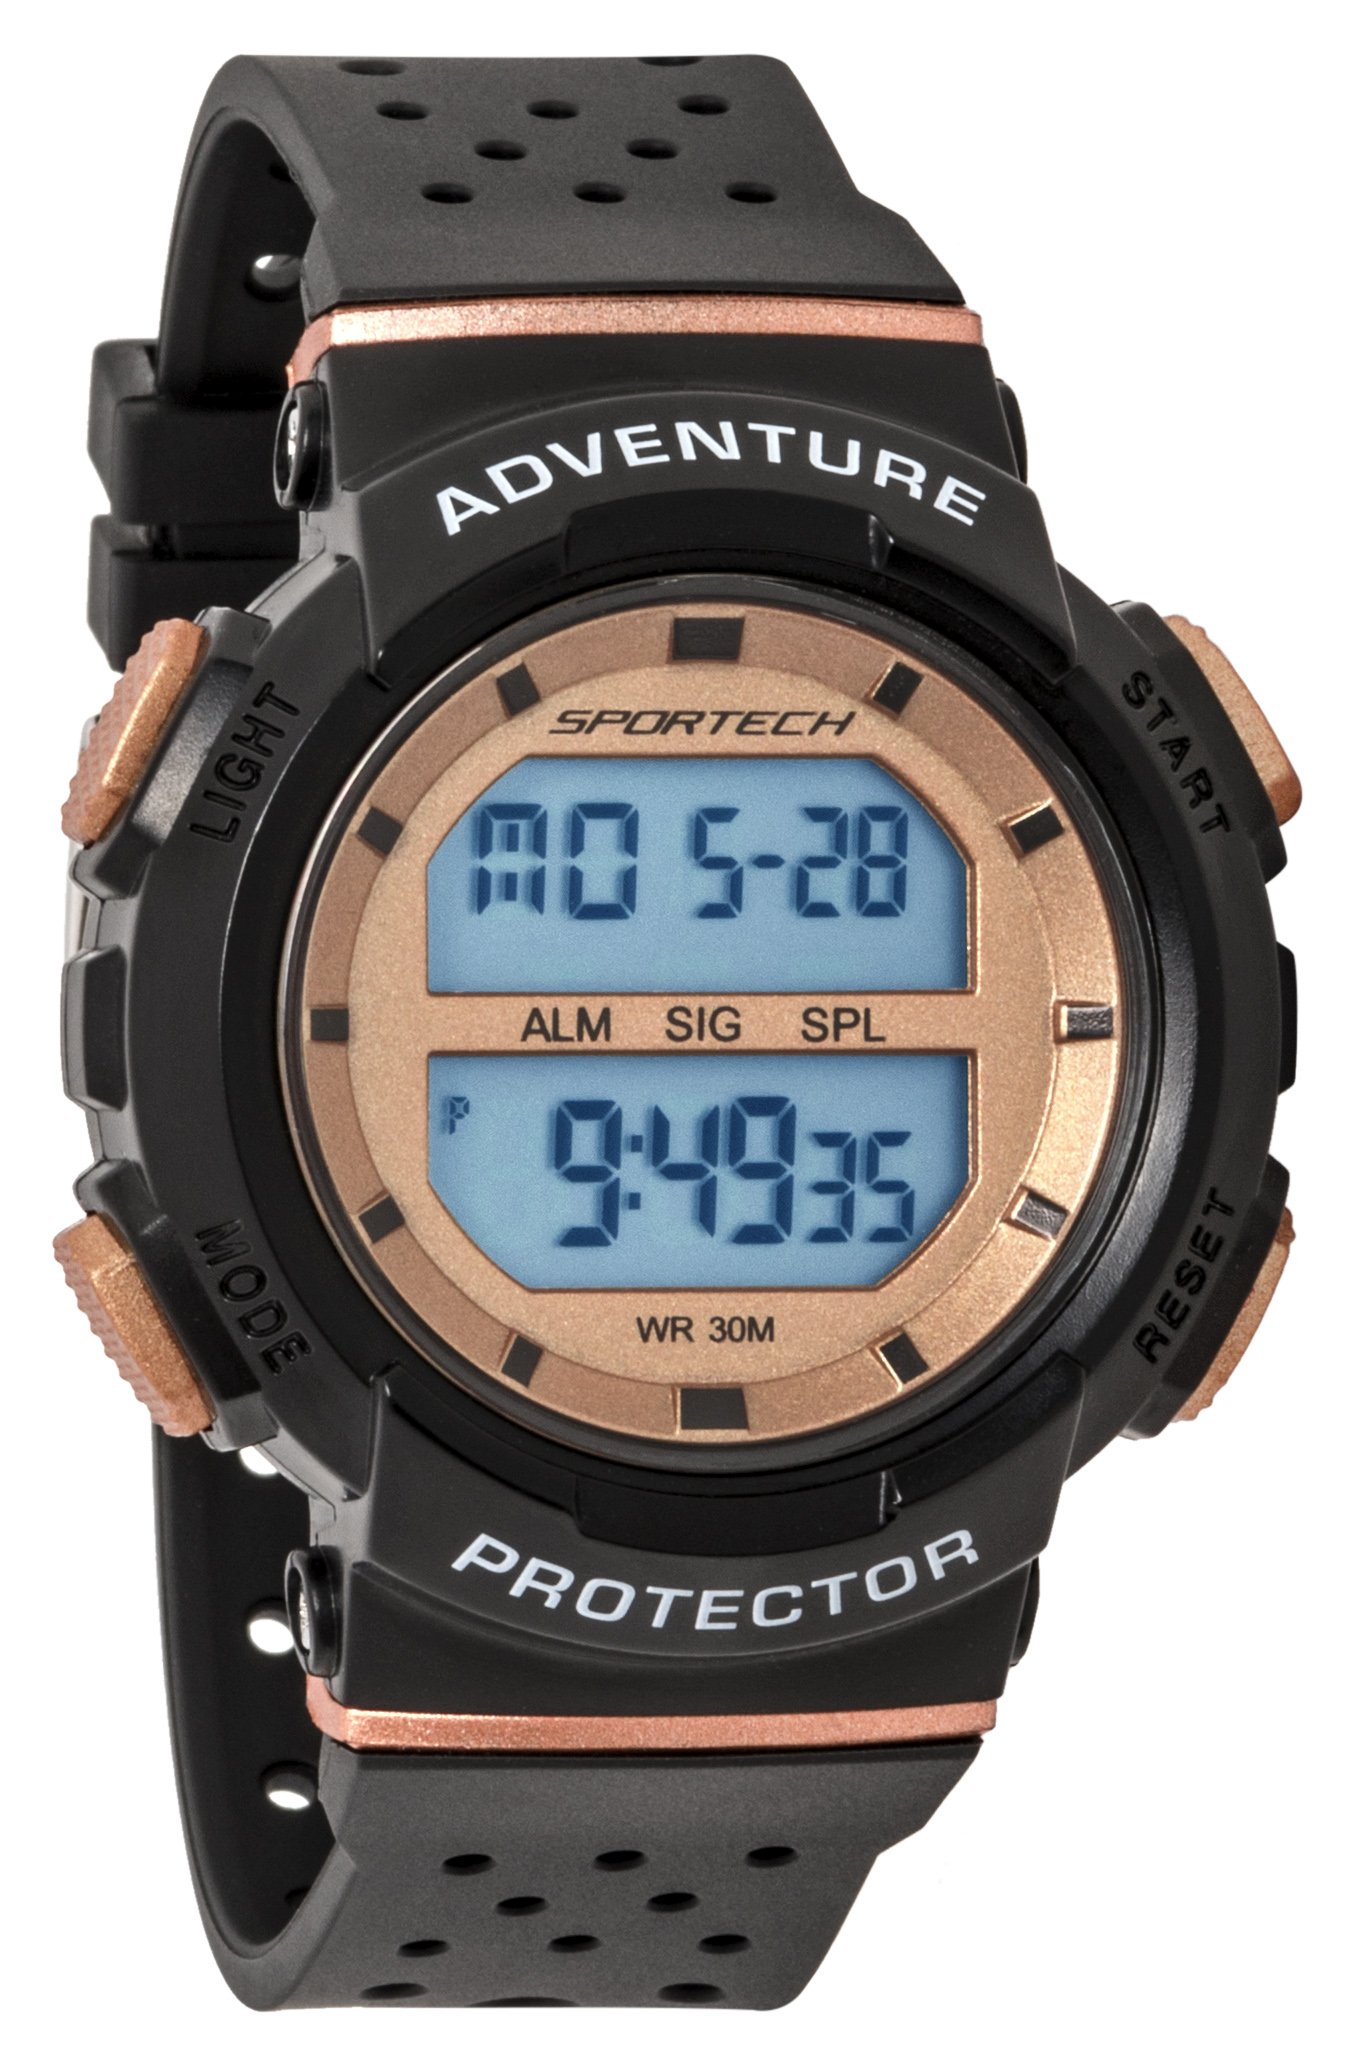 SPORTECH Unisex | Black & Rose Gold Digital Water-Resistant Sports Watch | SP12706 by Sportech